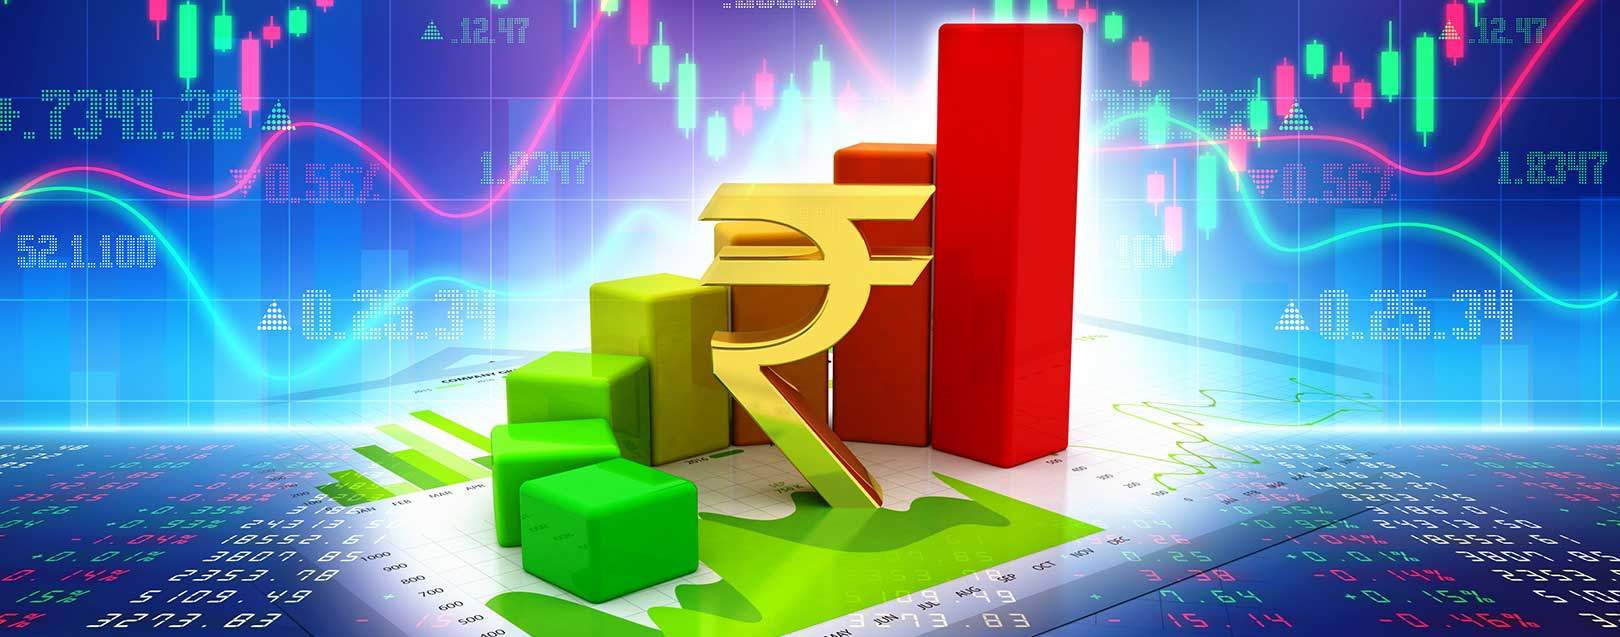 India's economy grows 6.3% in Q2 this fiscal